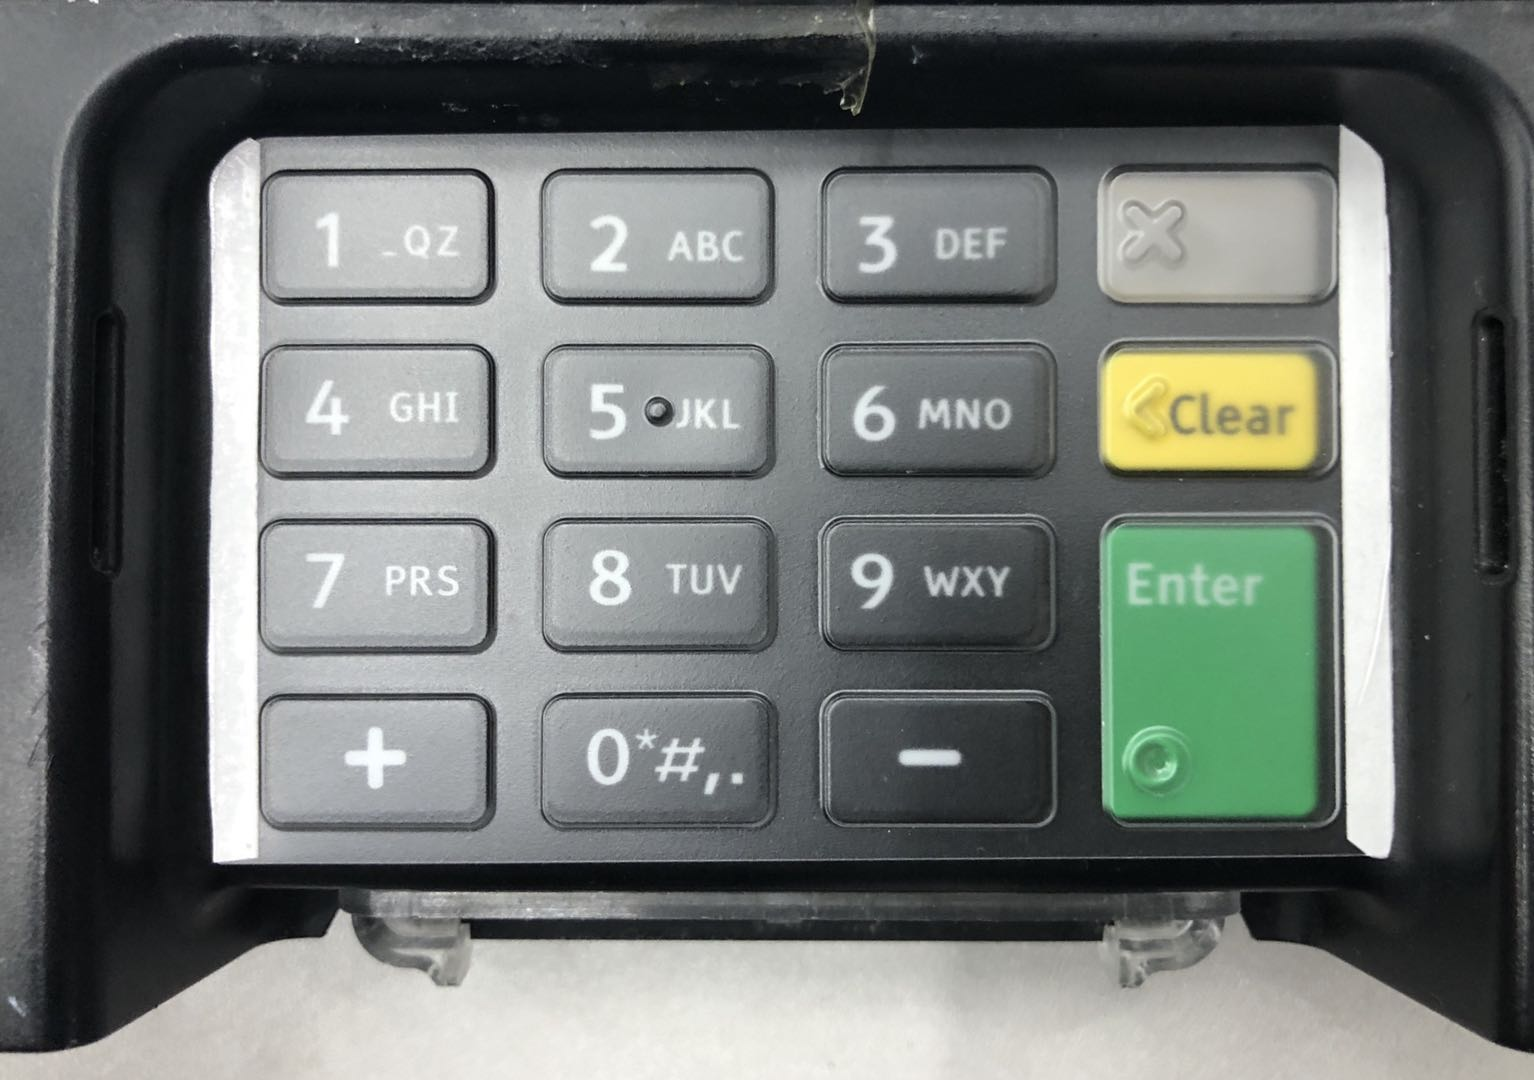 Ingenico ISC 480 Keypad Protective Spill Cover